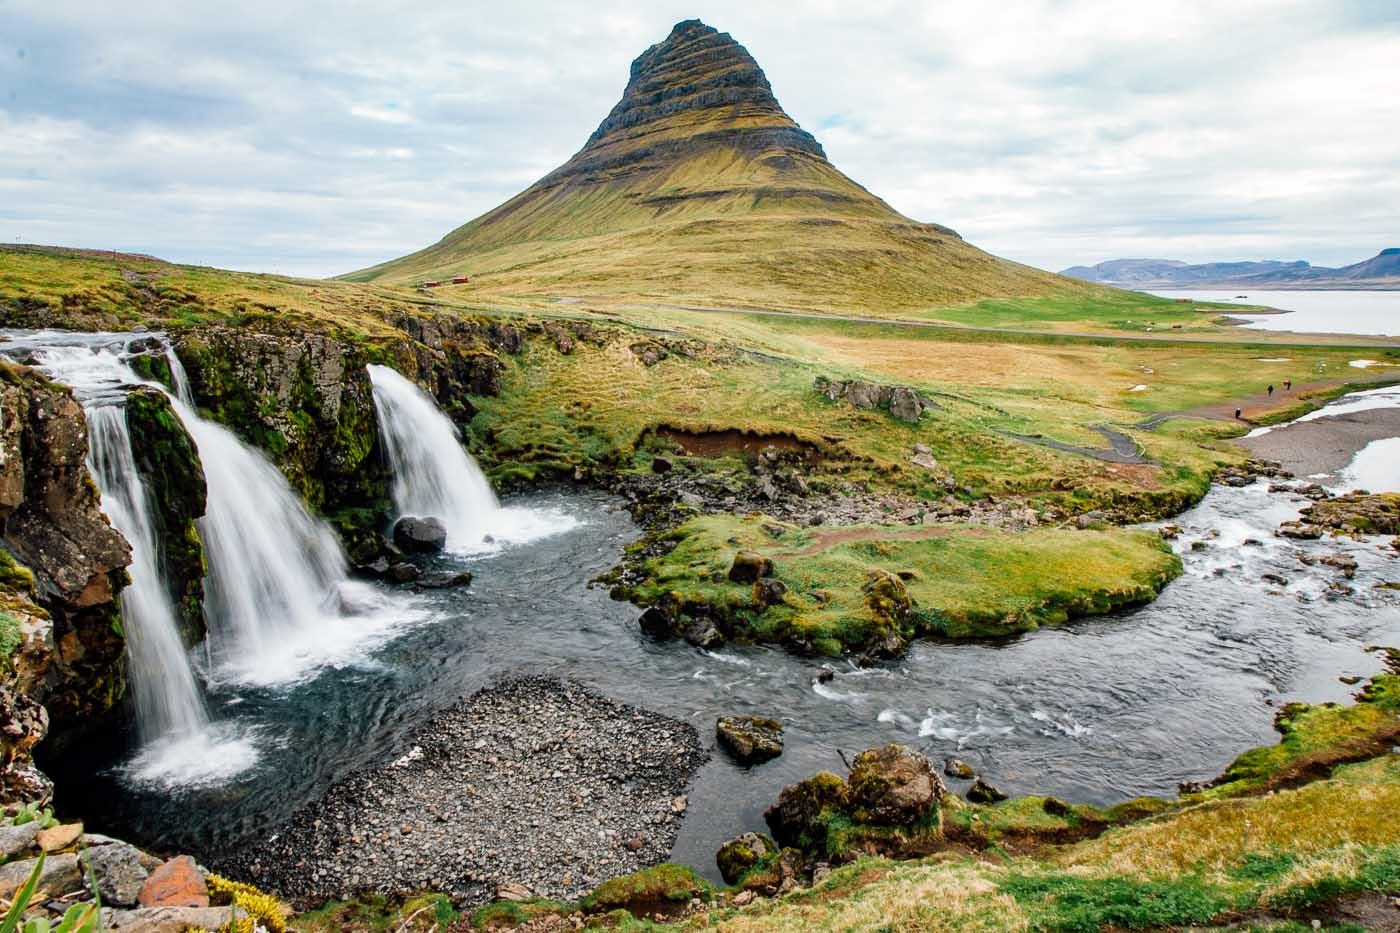 The three Kirkjufellsfoss waterfalls with the Kirkjufell mountain in the background